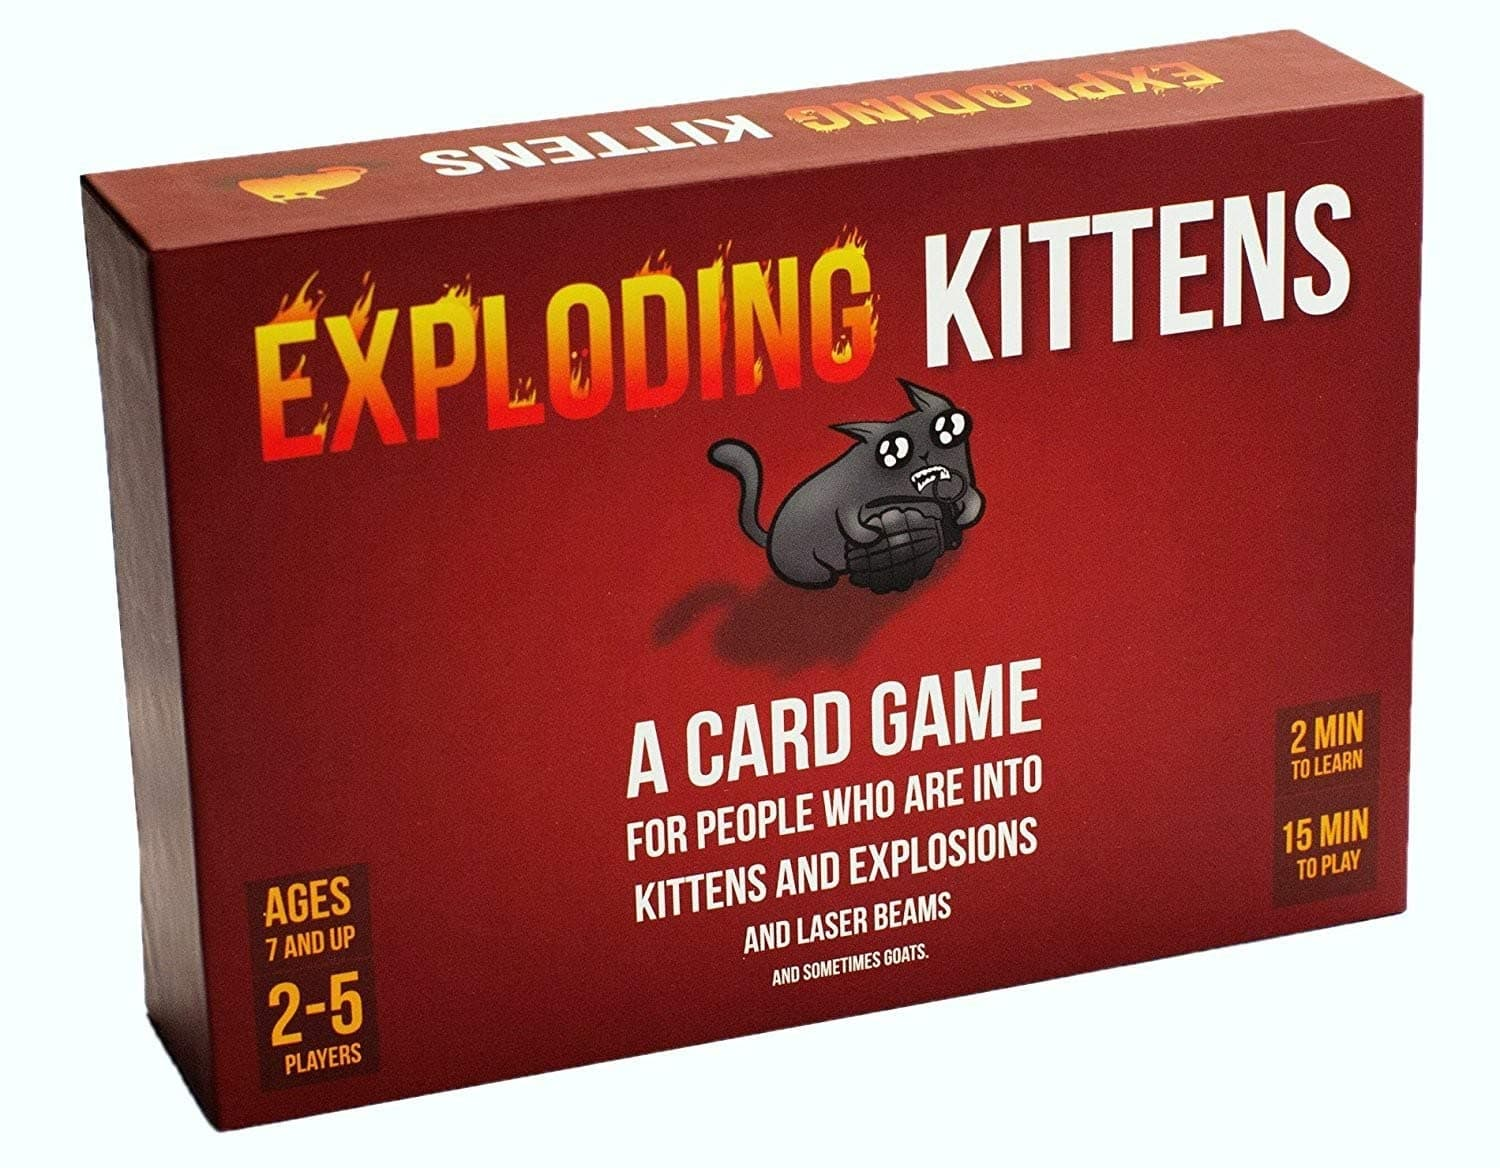 Exploding Kittens Card Game at 50% off on Amazon $9.99